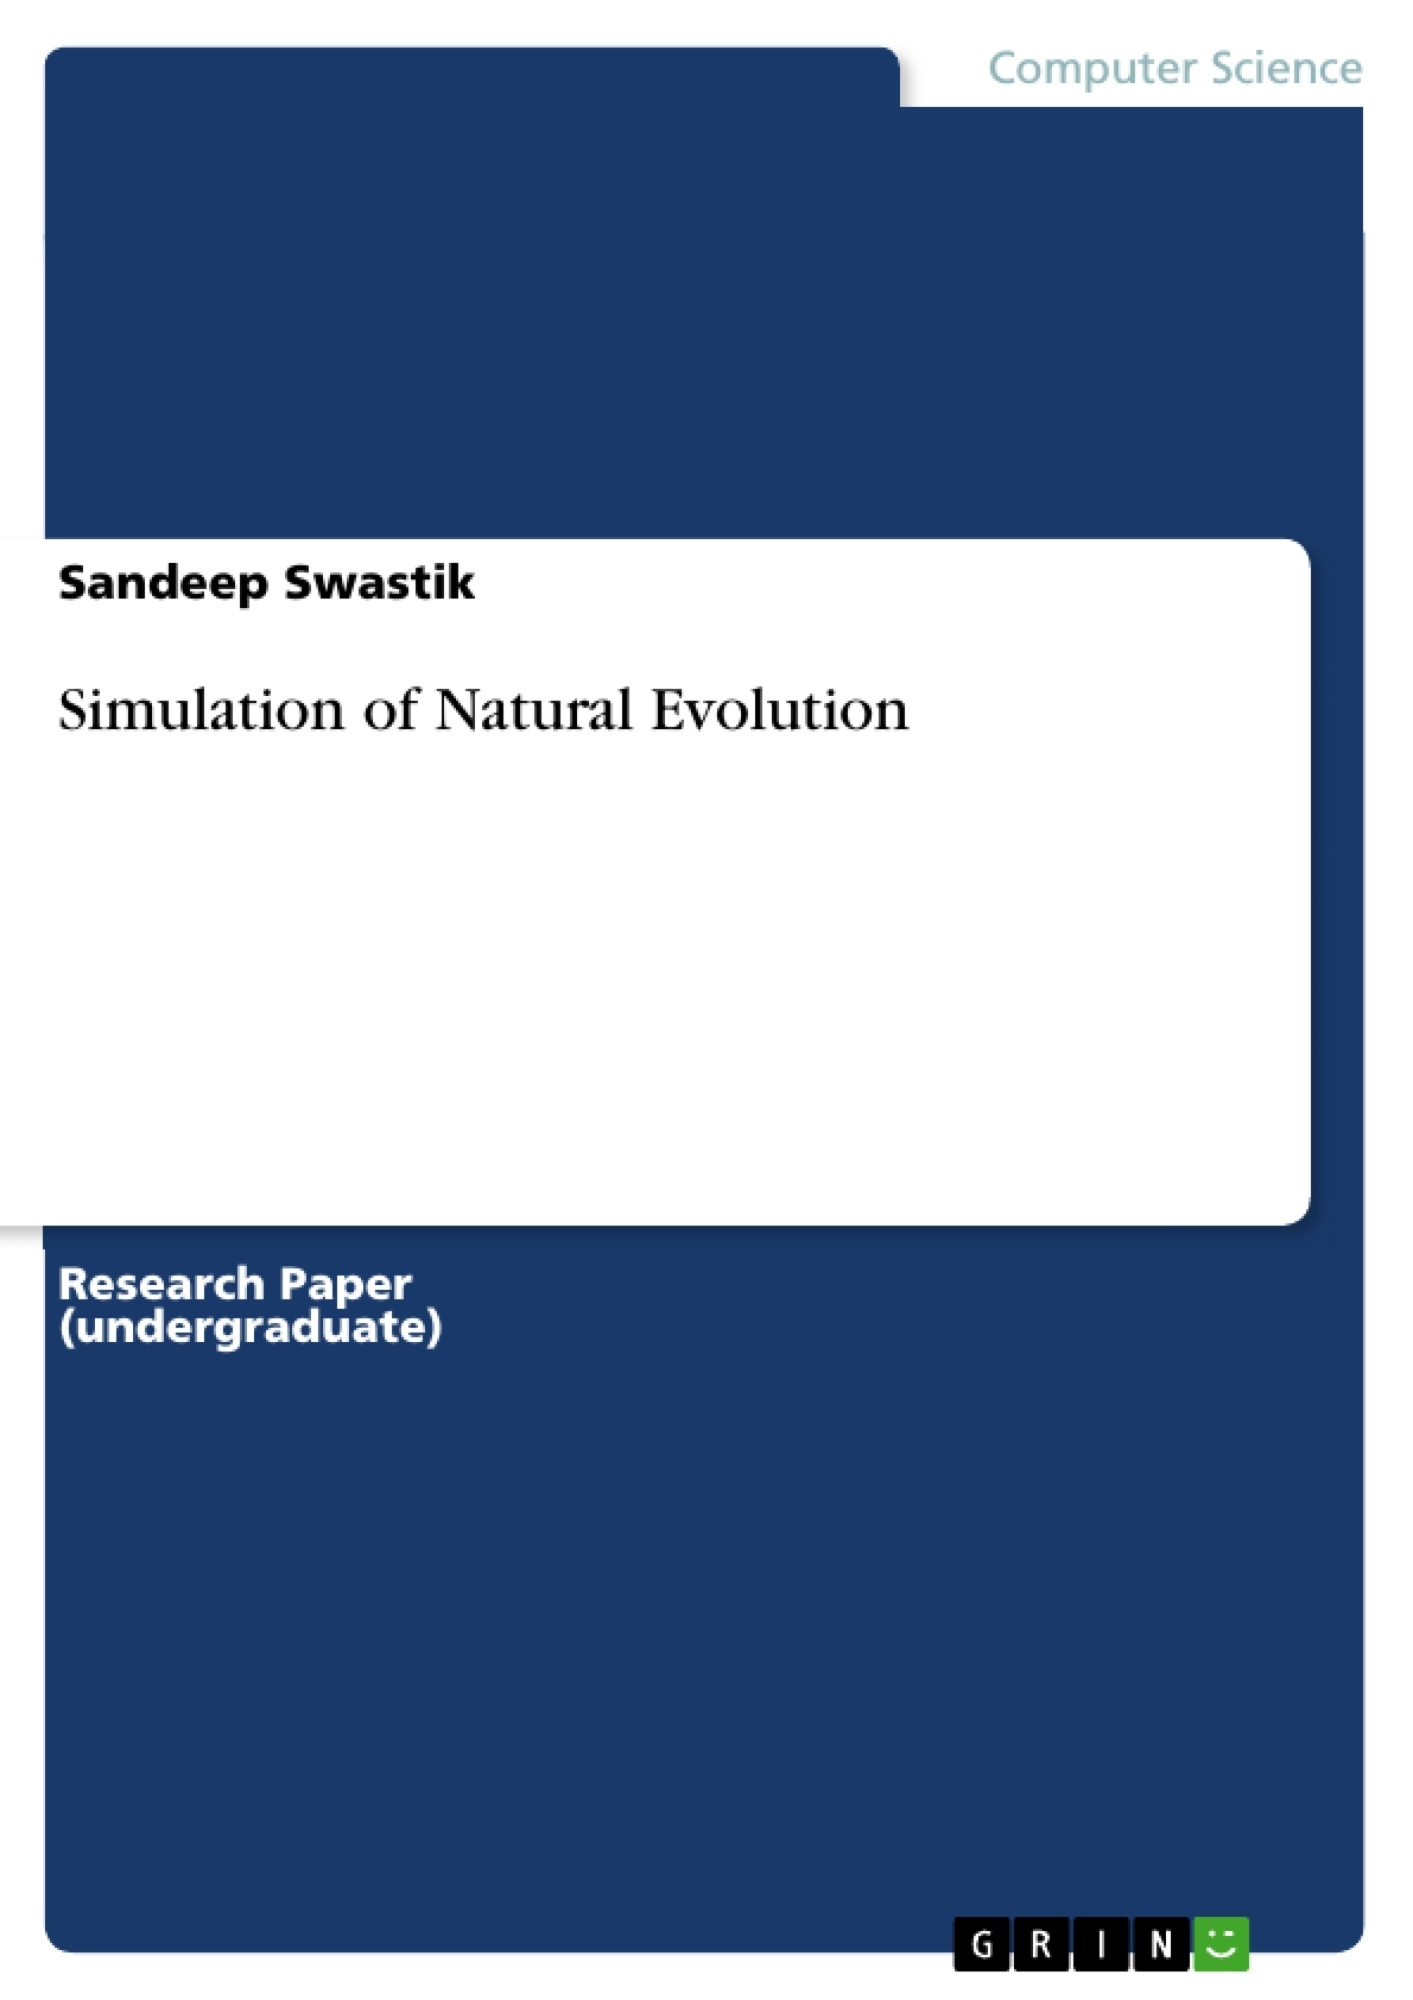 Title: Simulation of Natural Evolution